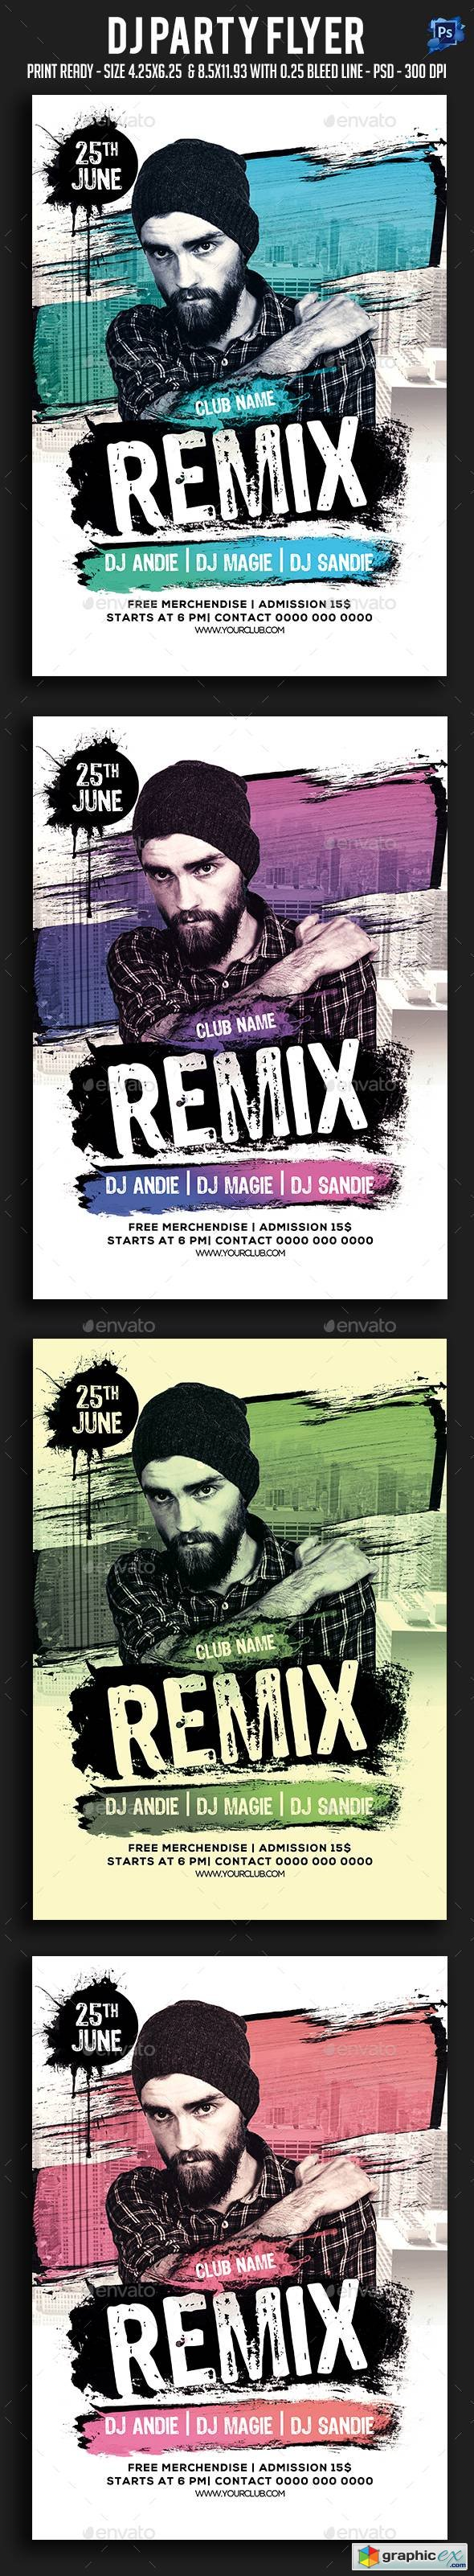 Graphicriver Dj Party Flyer 19746913